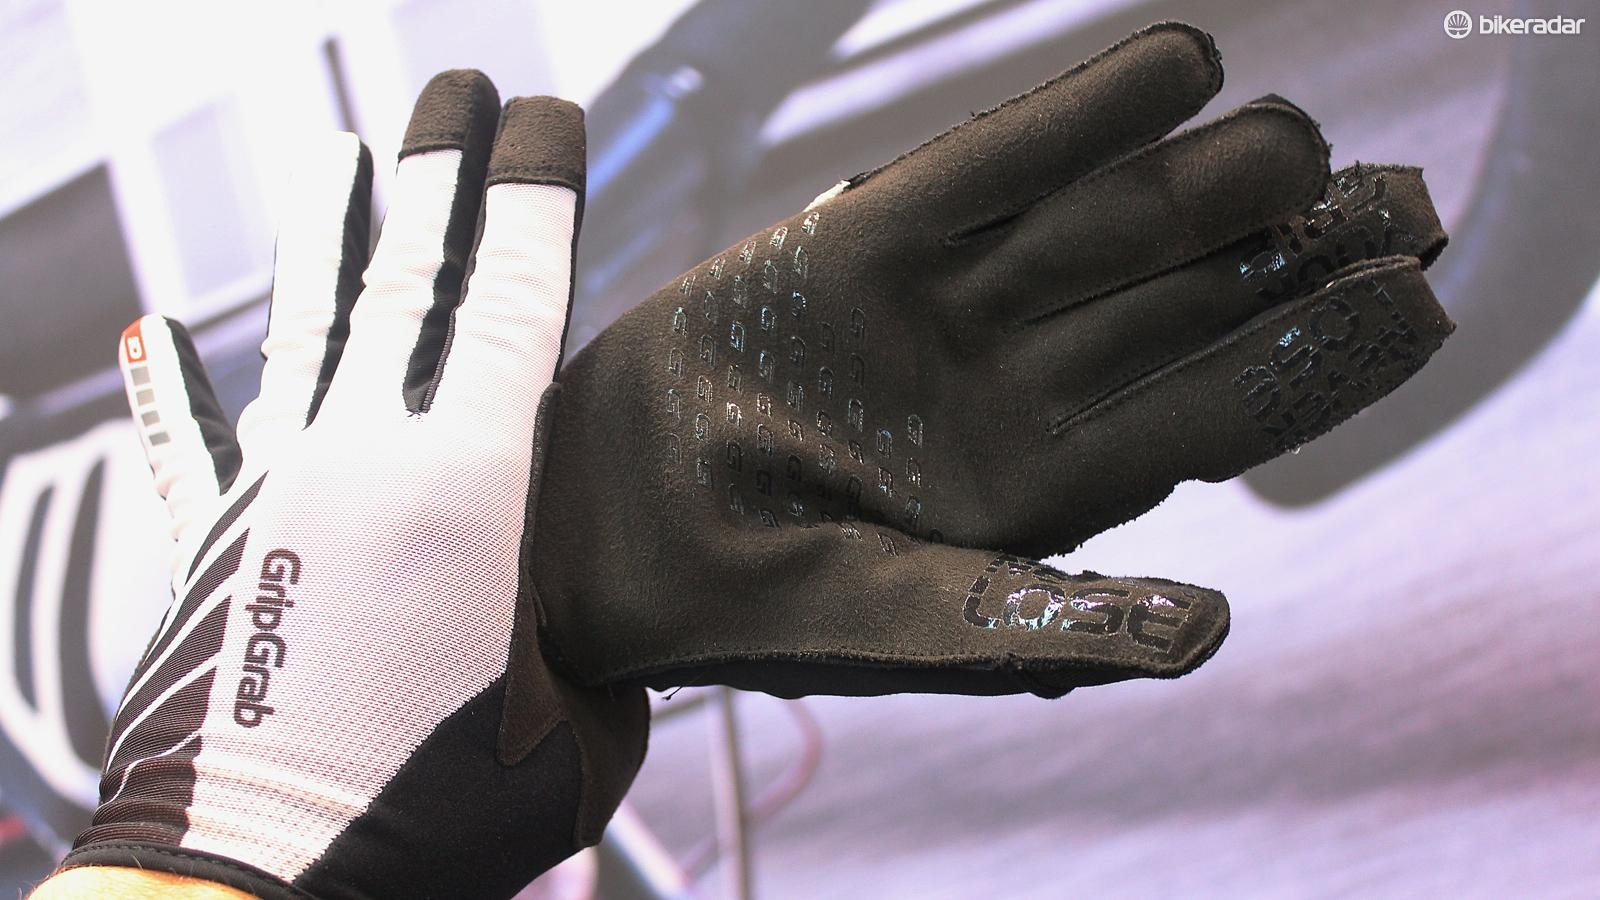 The Racing gloves have silicone dots on the inside of the palm as well as on the outside